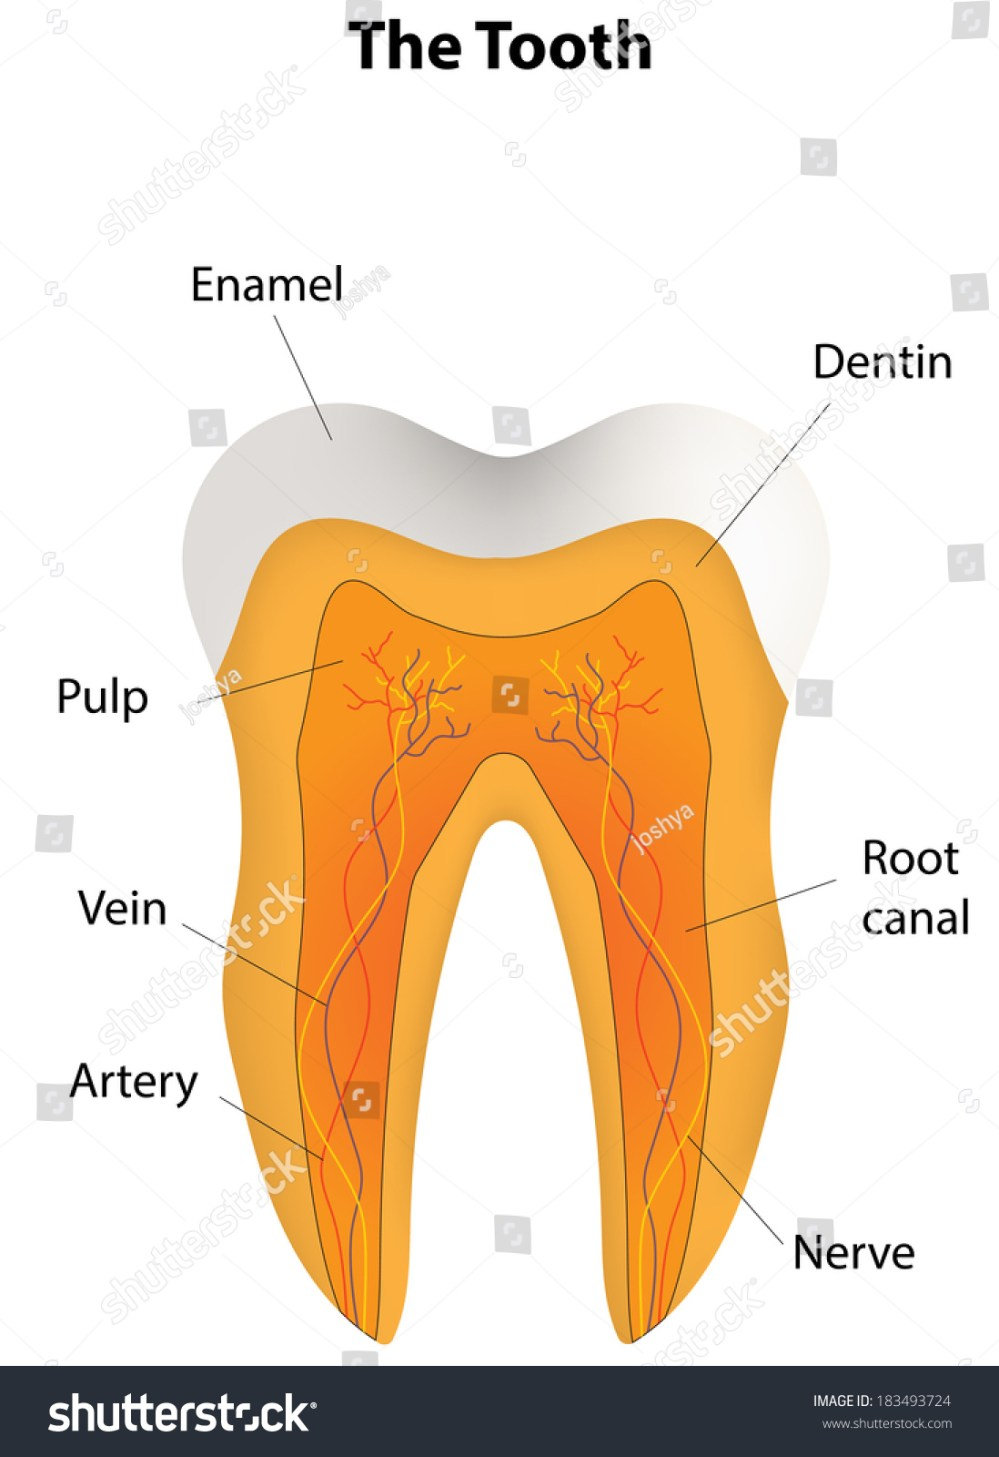 medium resolution of tooth labeled diagram stock vector royalty free 183493724 rh shutterstock com tooth anatomy diagram tooth anatomy diagram